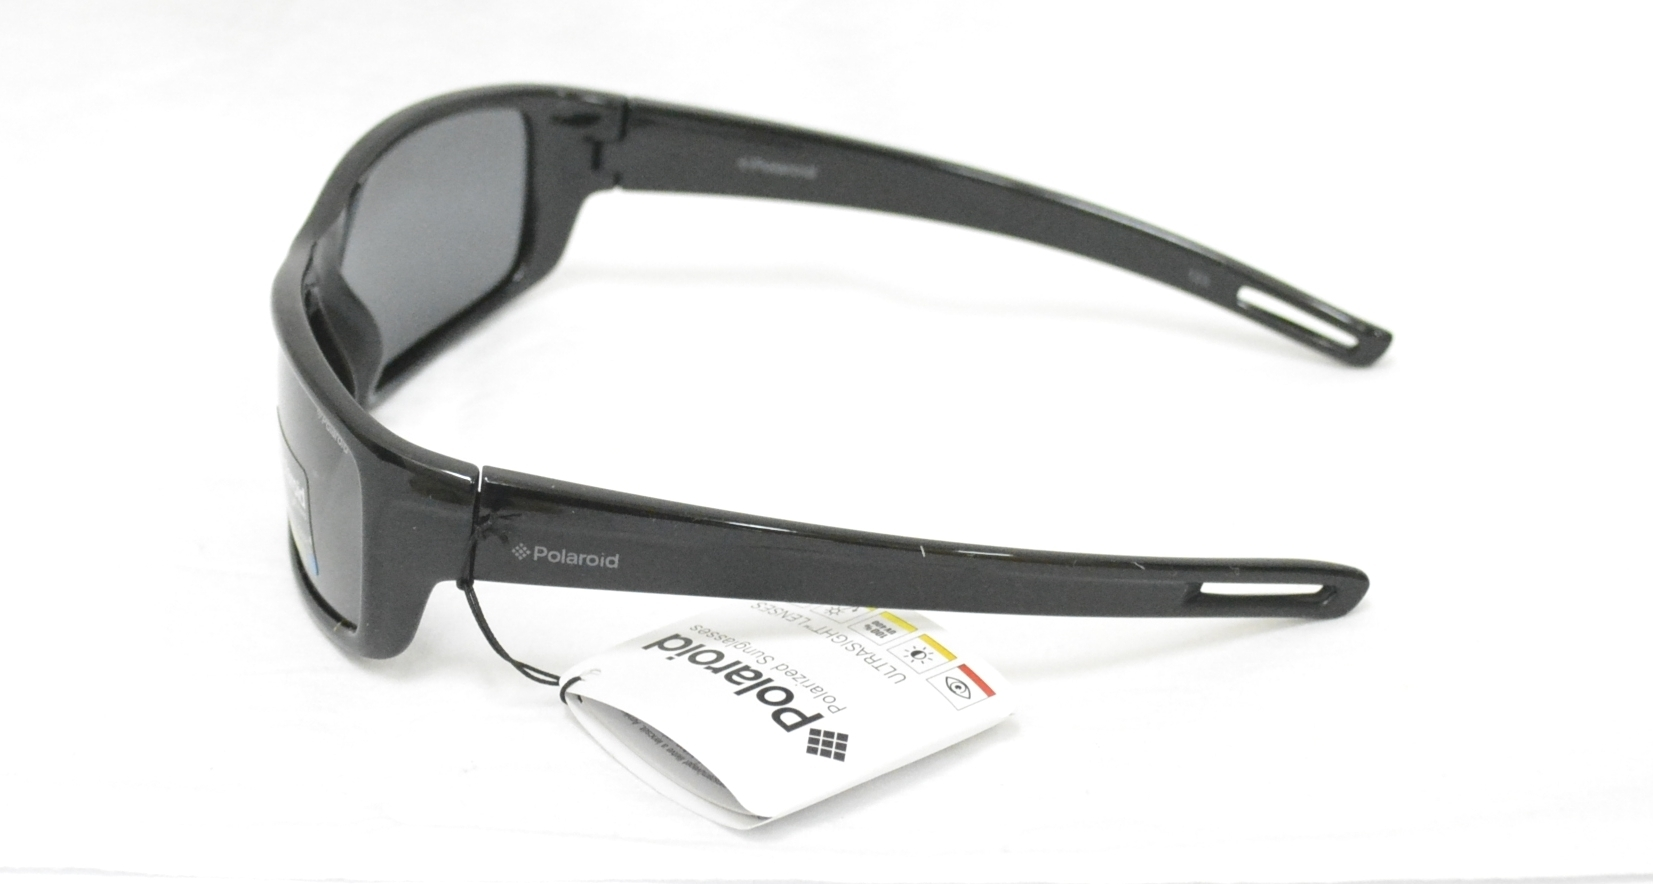 3a2d5d08d82ab3 Sunglasses Polaroid P 0423 A KIDS BLACK GREY LENSES OTTICA TRAINA